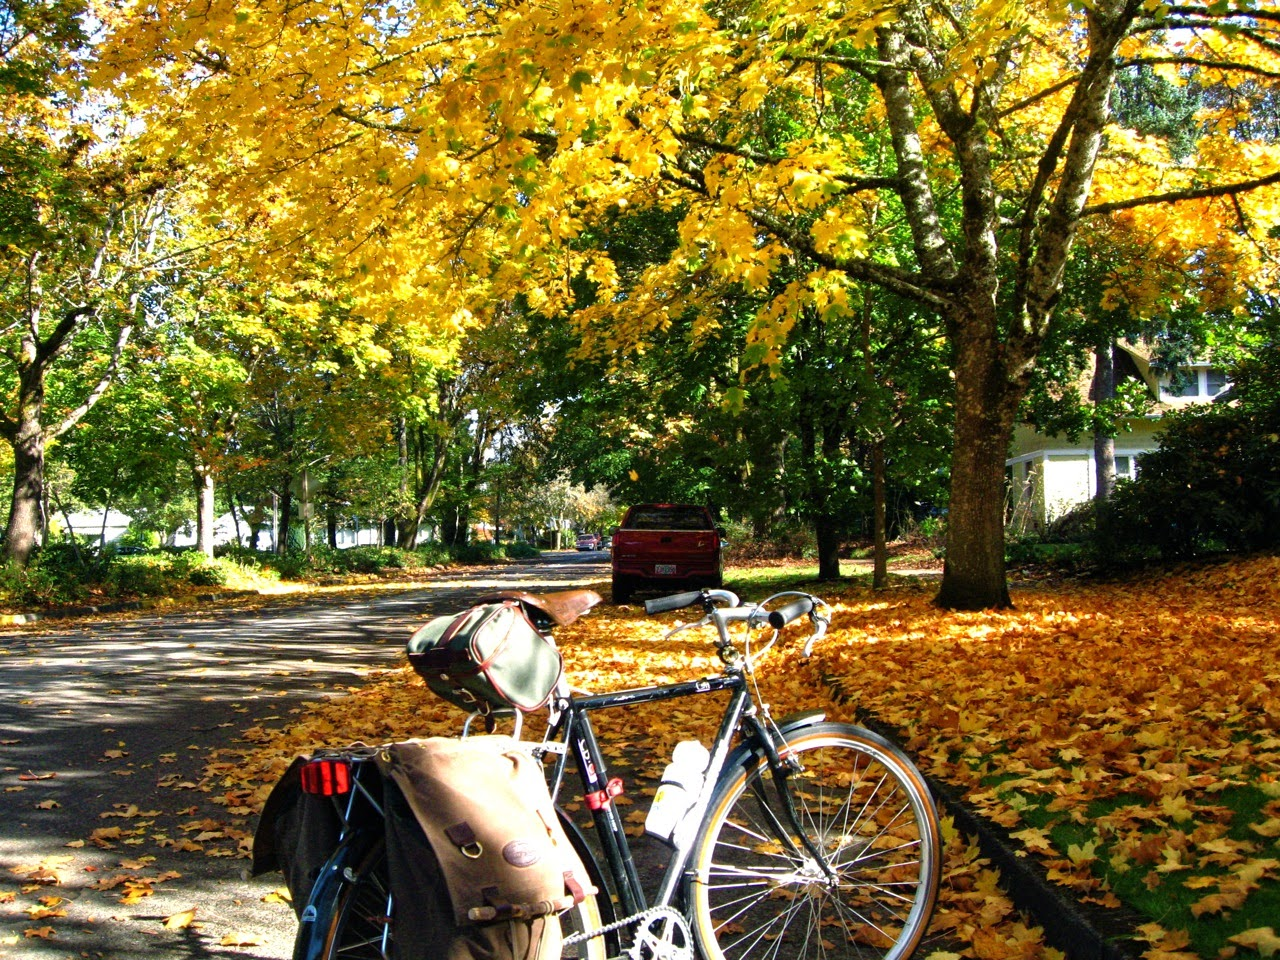 Bridgestone CB-Zip, fall color, Eugene Oregon, trees, gold, red, bicycle, autumn